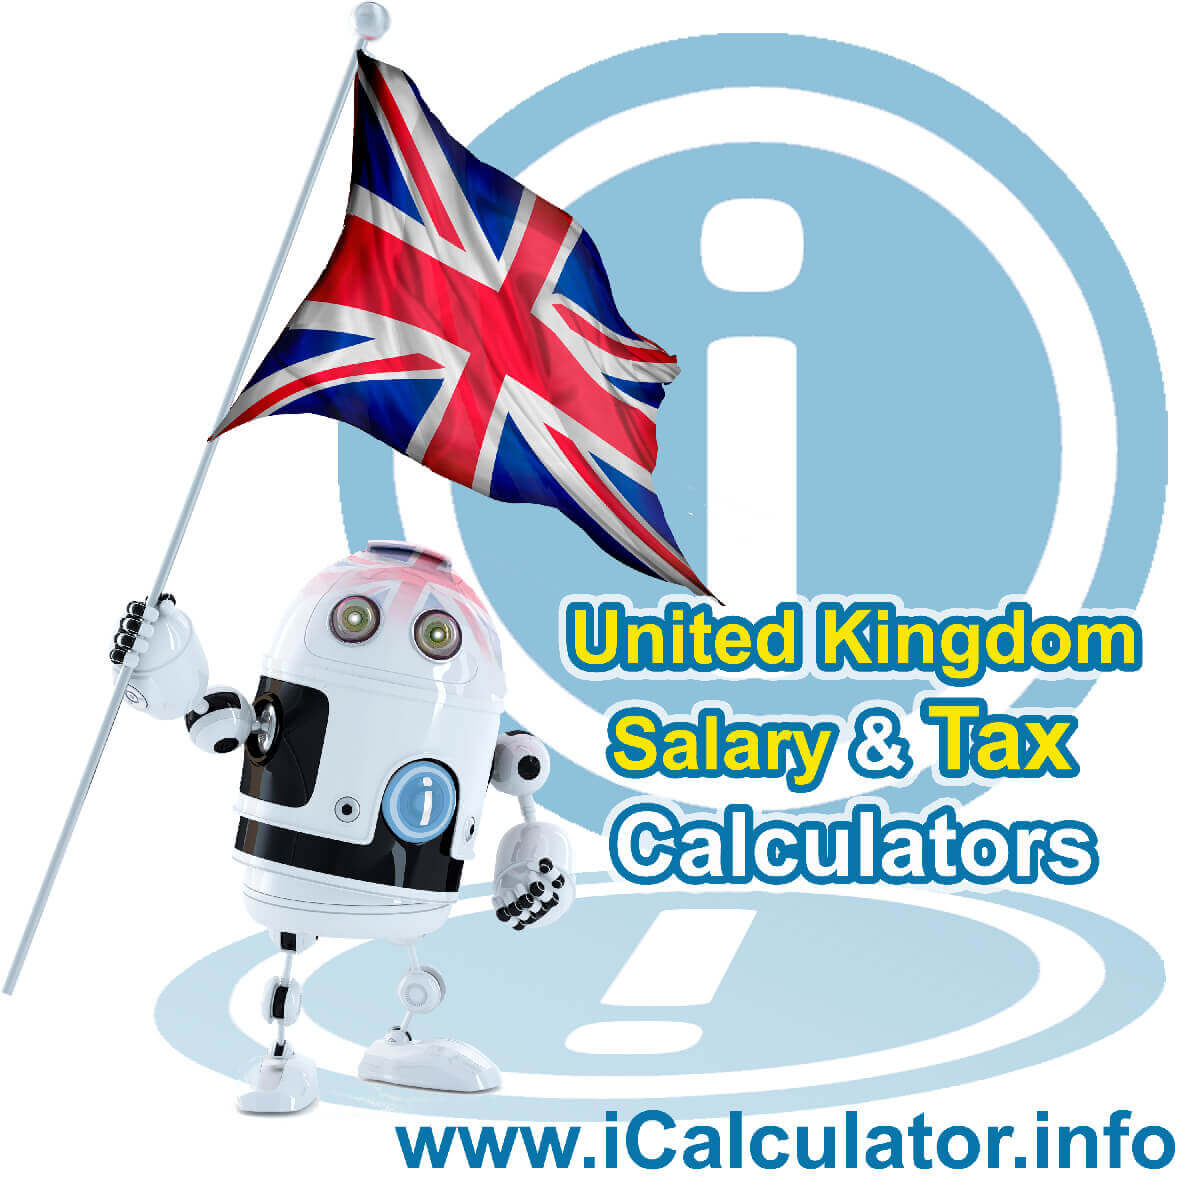 Weekly Tax Calculator | 2015 / 2016 Tax Calculator. The Weekly tax calculator, enter your Weekly and enter, simple. The tax calculator for 2015 / 2016 Weekly Tax Calculations